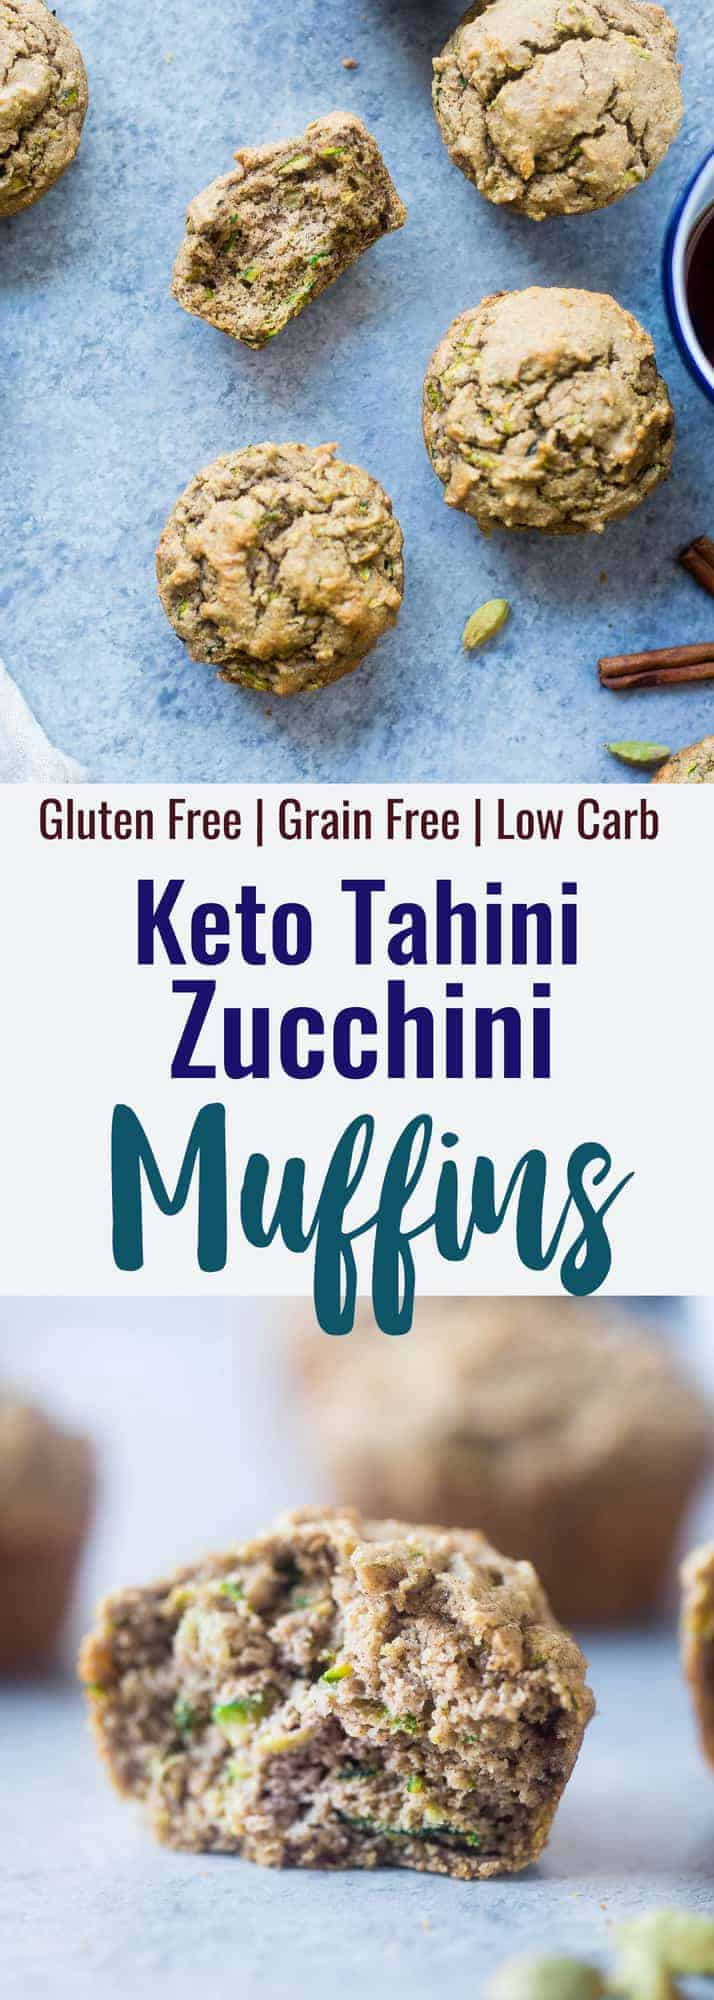 keto zucchini muffins collage photo